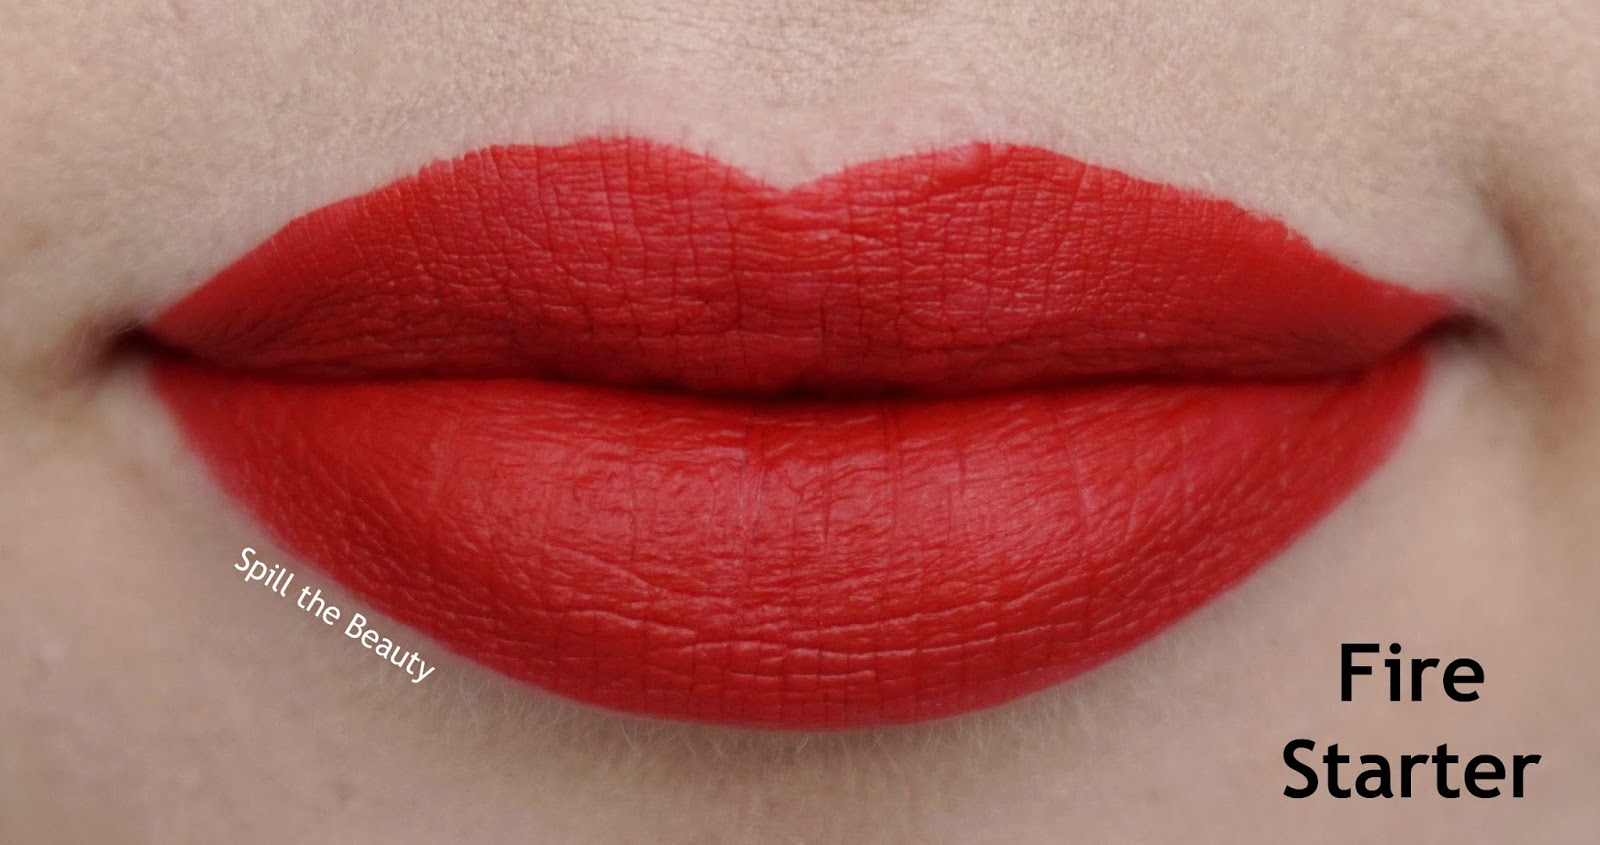 rimmel london stay matte liquid lip color review swatches 500 fire starter